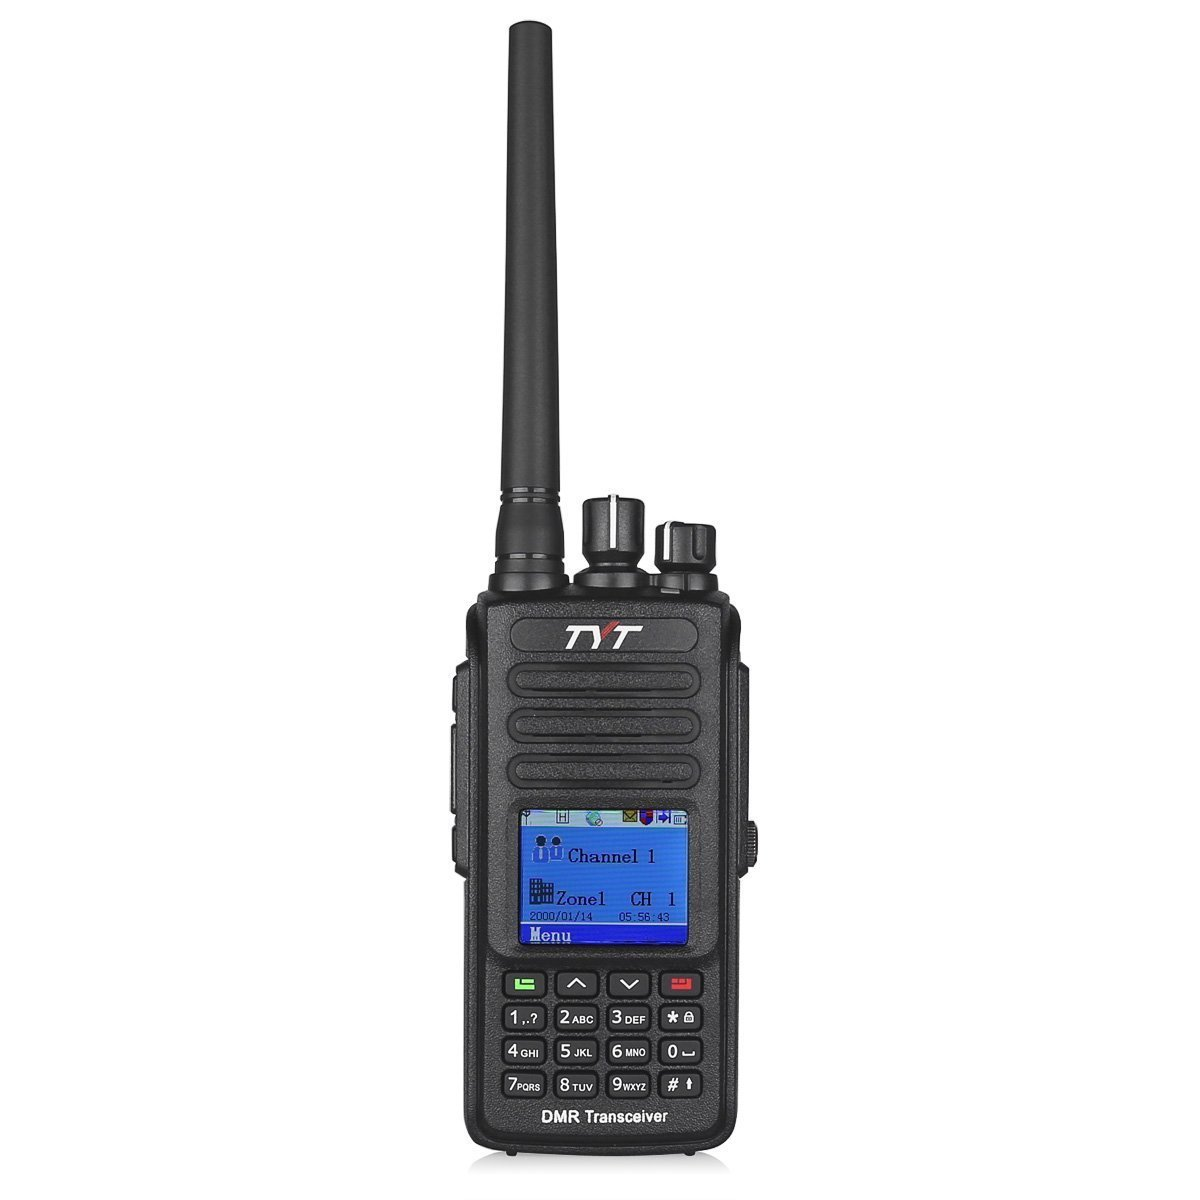 TYT Upgraded MD-390 DMR Digital Radio with GPS Function Waterproof Dustproof IP67 Walkie Talkie Transceiver UHF 400-480MHz Two-Way Radio with 2 Antennas 5558995058